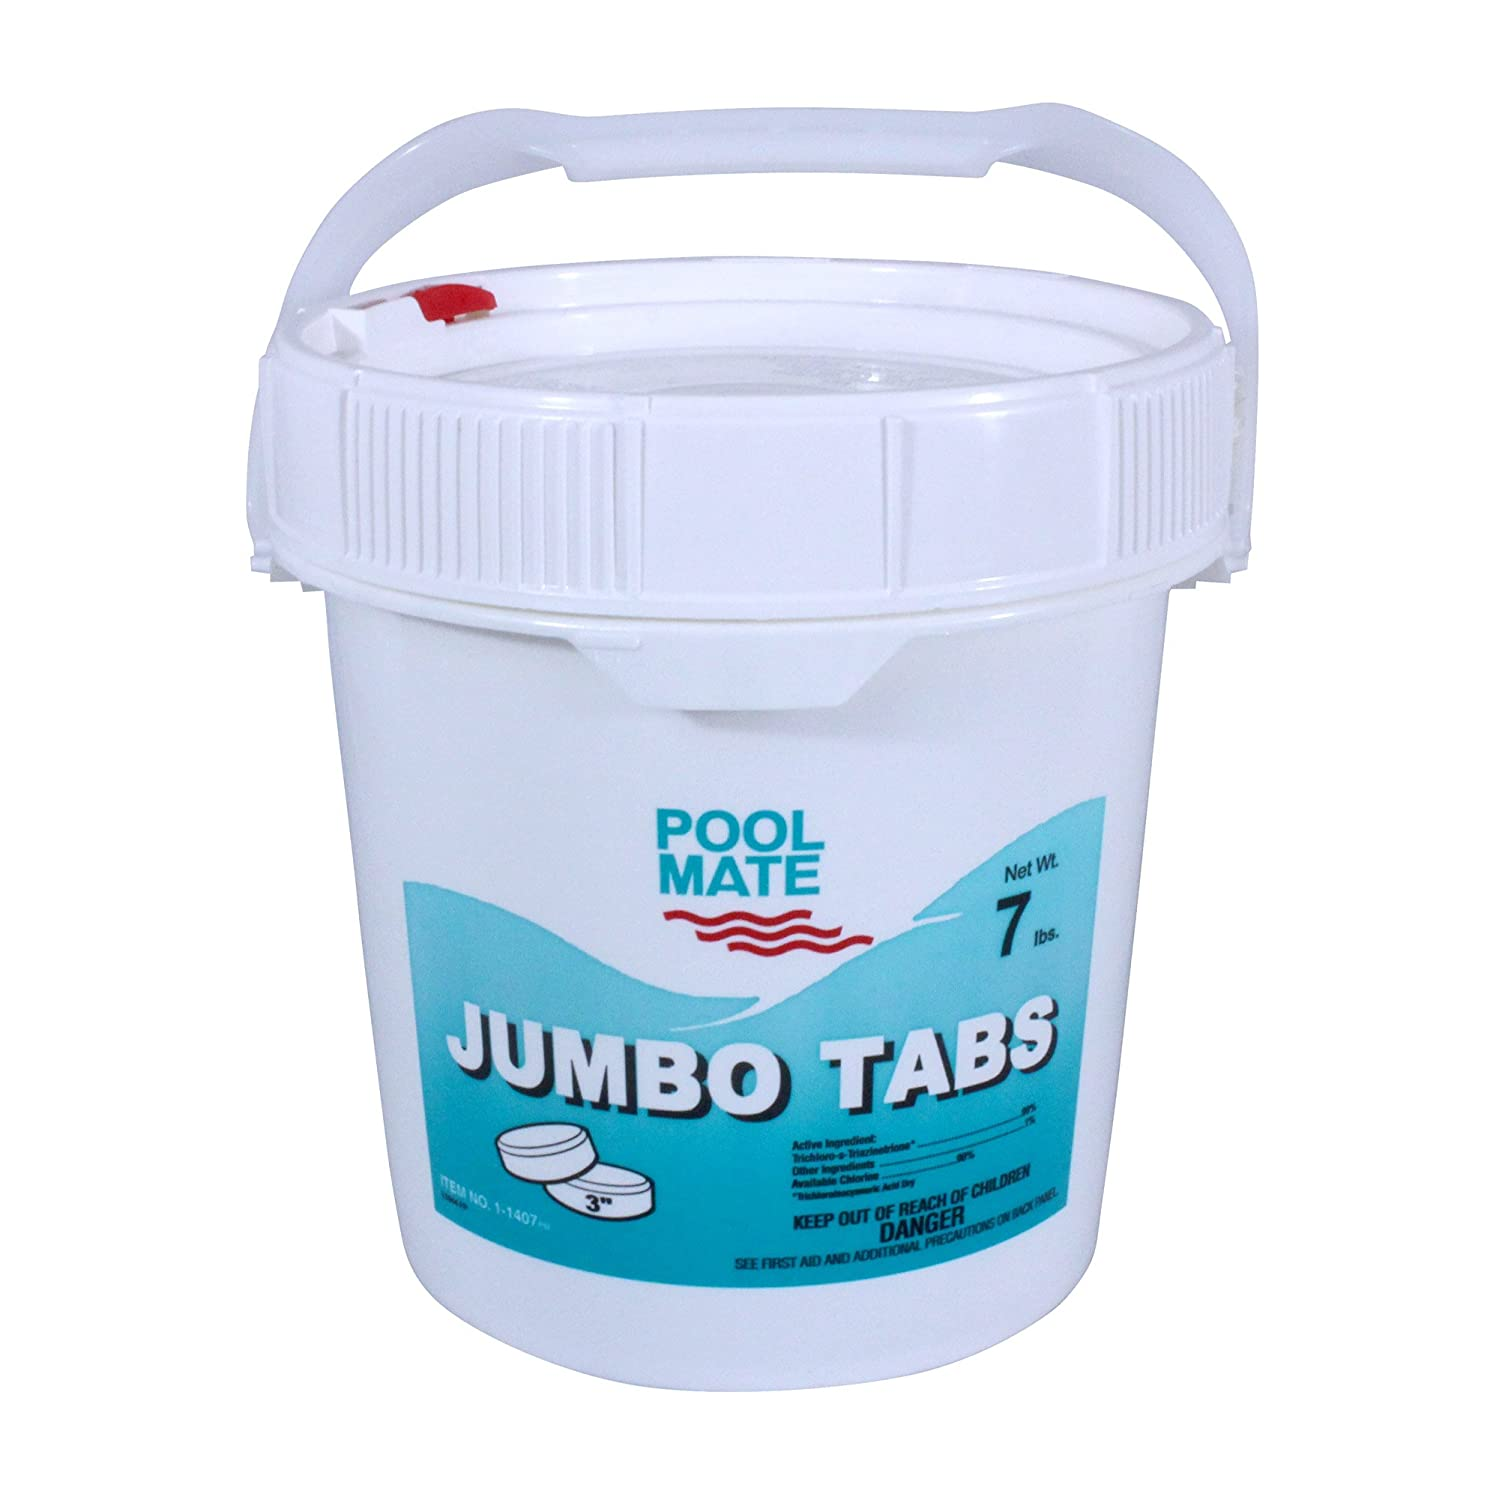 Pool Mate 1-1407 Jumbo 3-Inch Chlorine Tablets, 7-Pound Robelle Industries